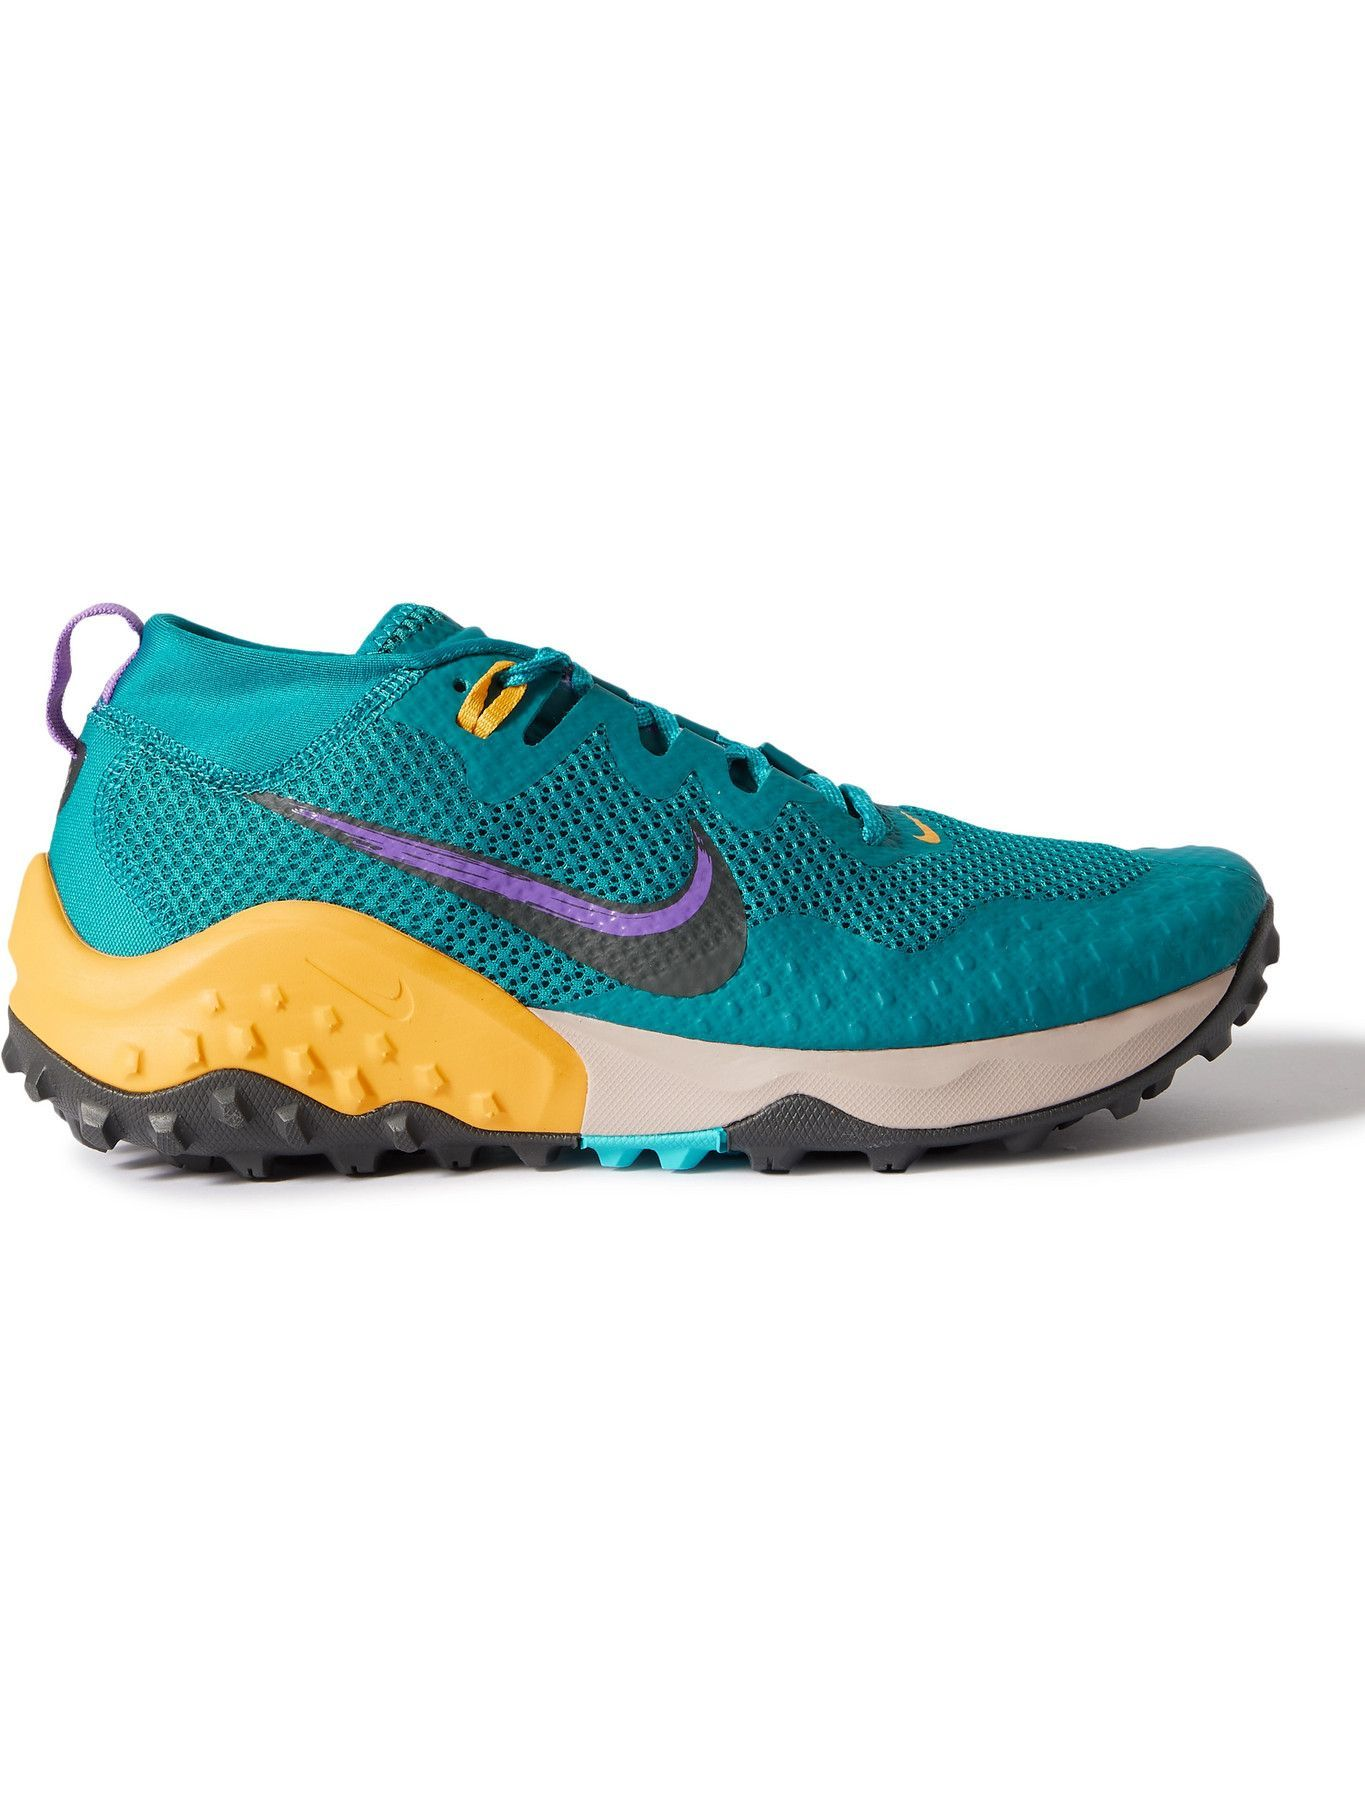 Photo: NIKE RUNNING - Nike Wildhorse 7 Canvas, Rubber and Mesh Running Sneakers - Blue